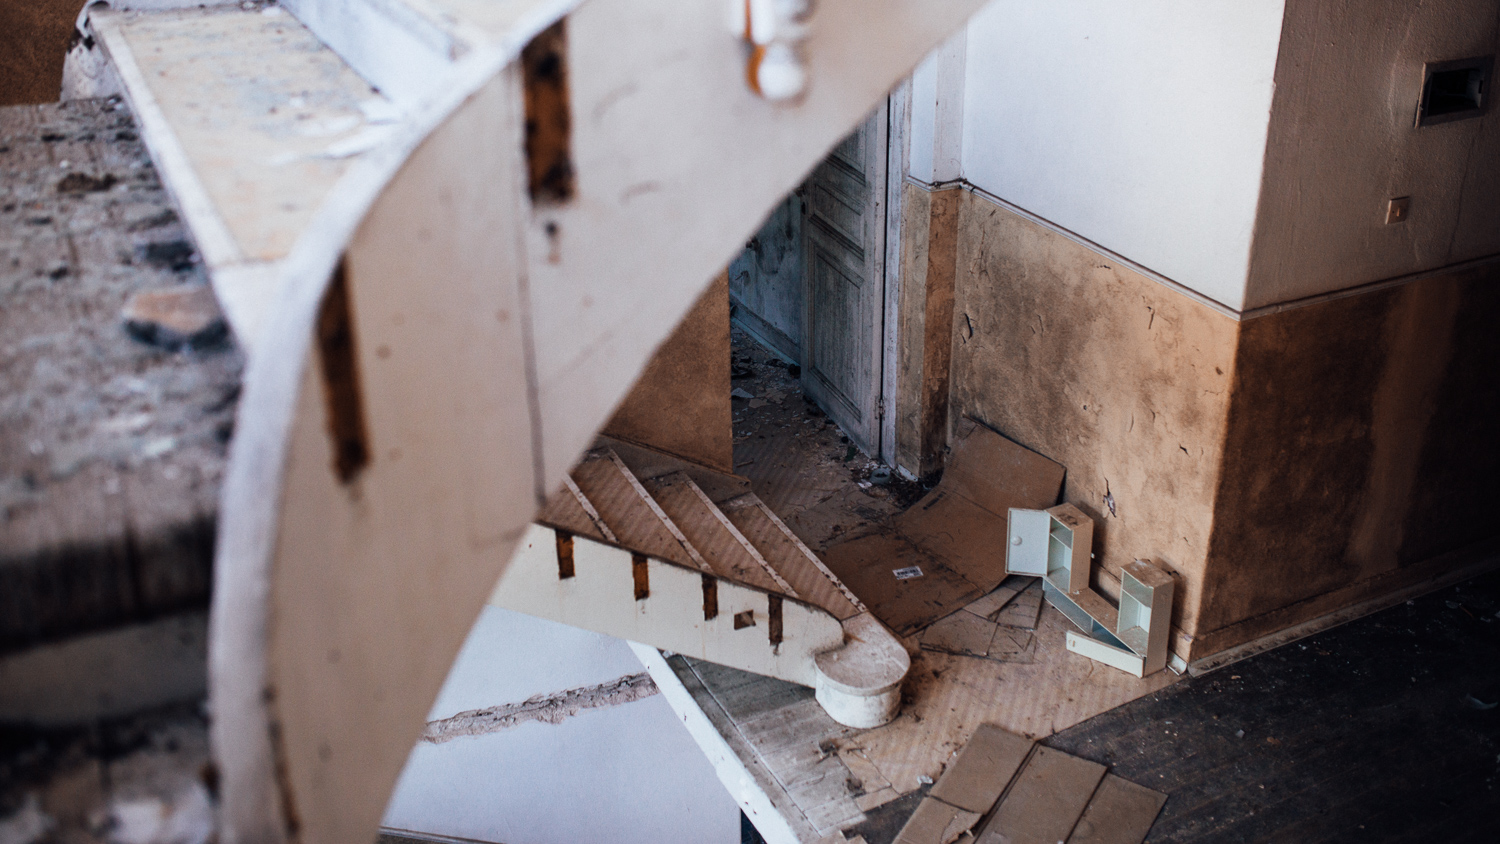 Abandoned-Greece-Atte-Tanner-Photography-2.jpg